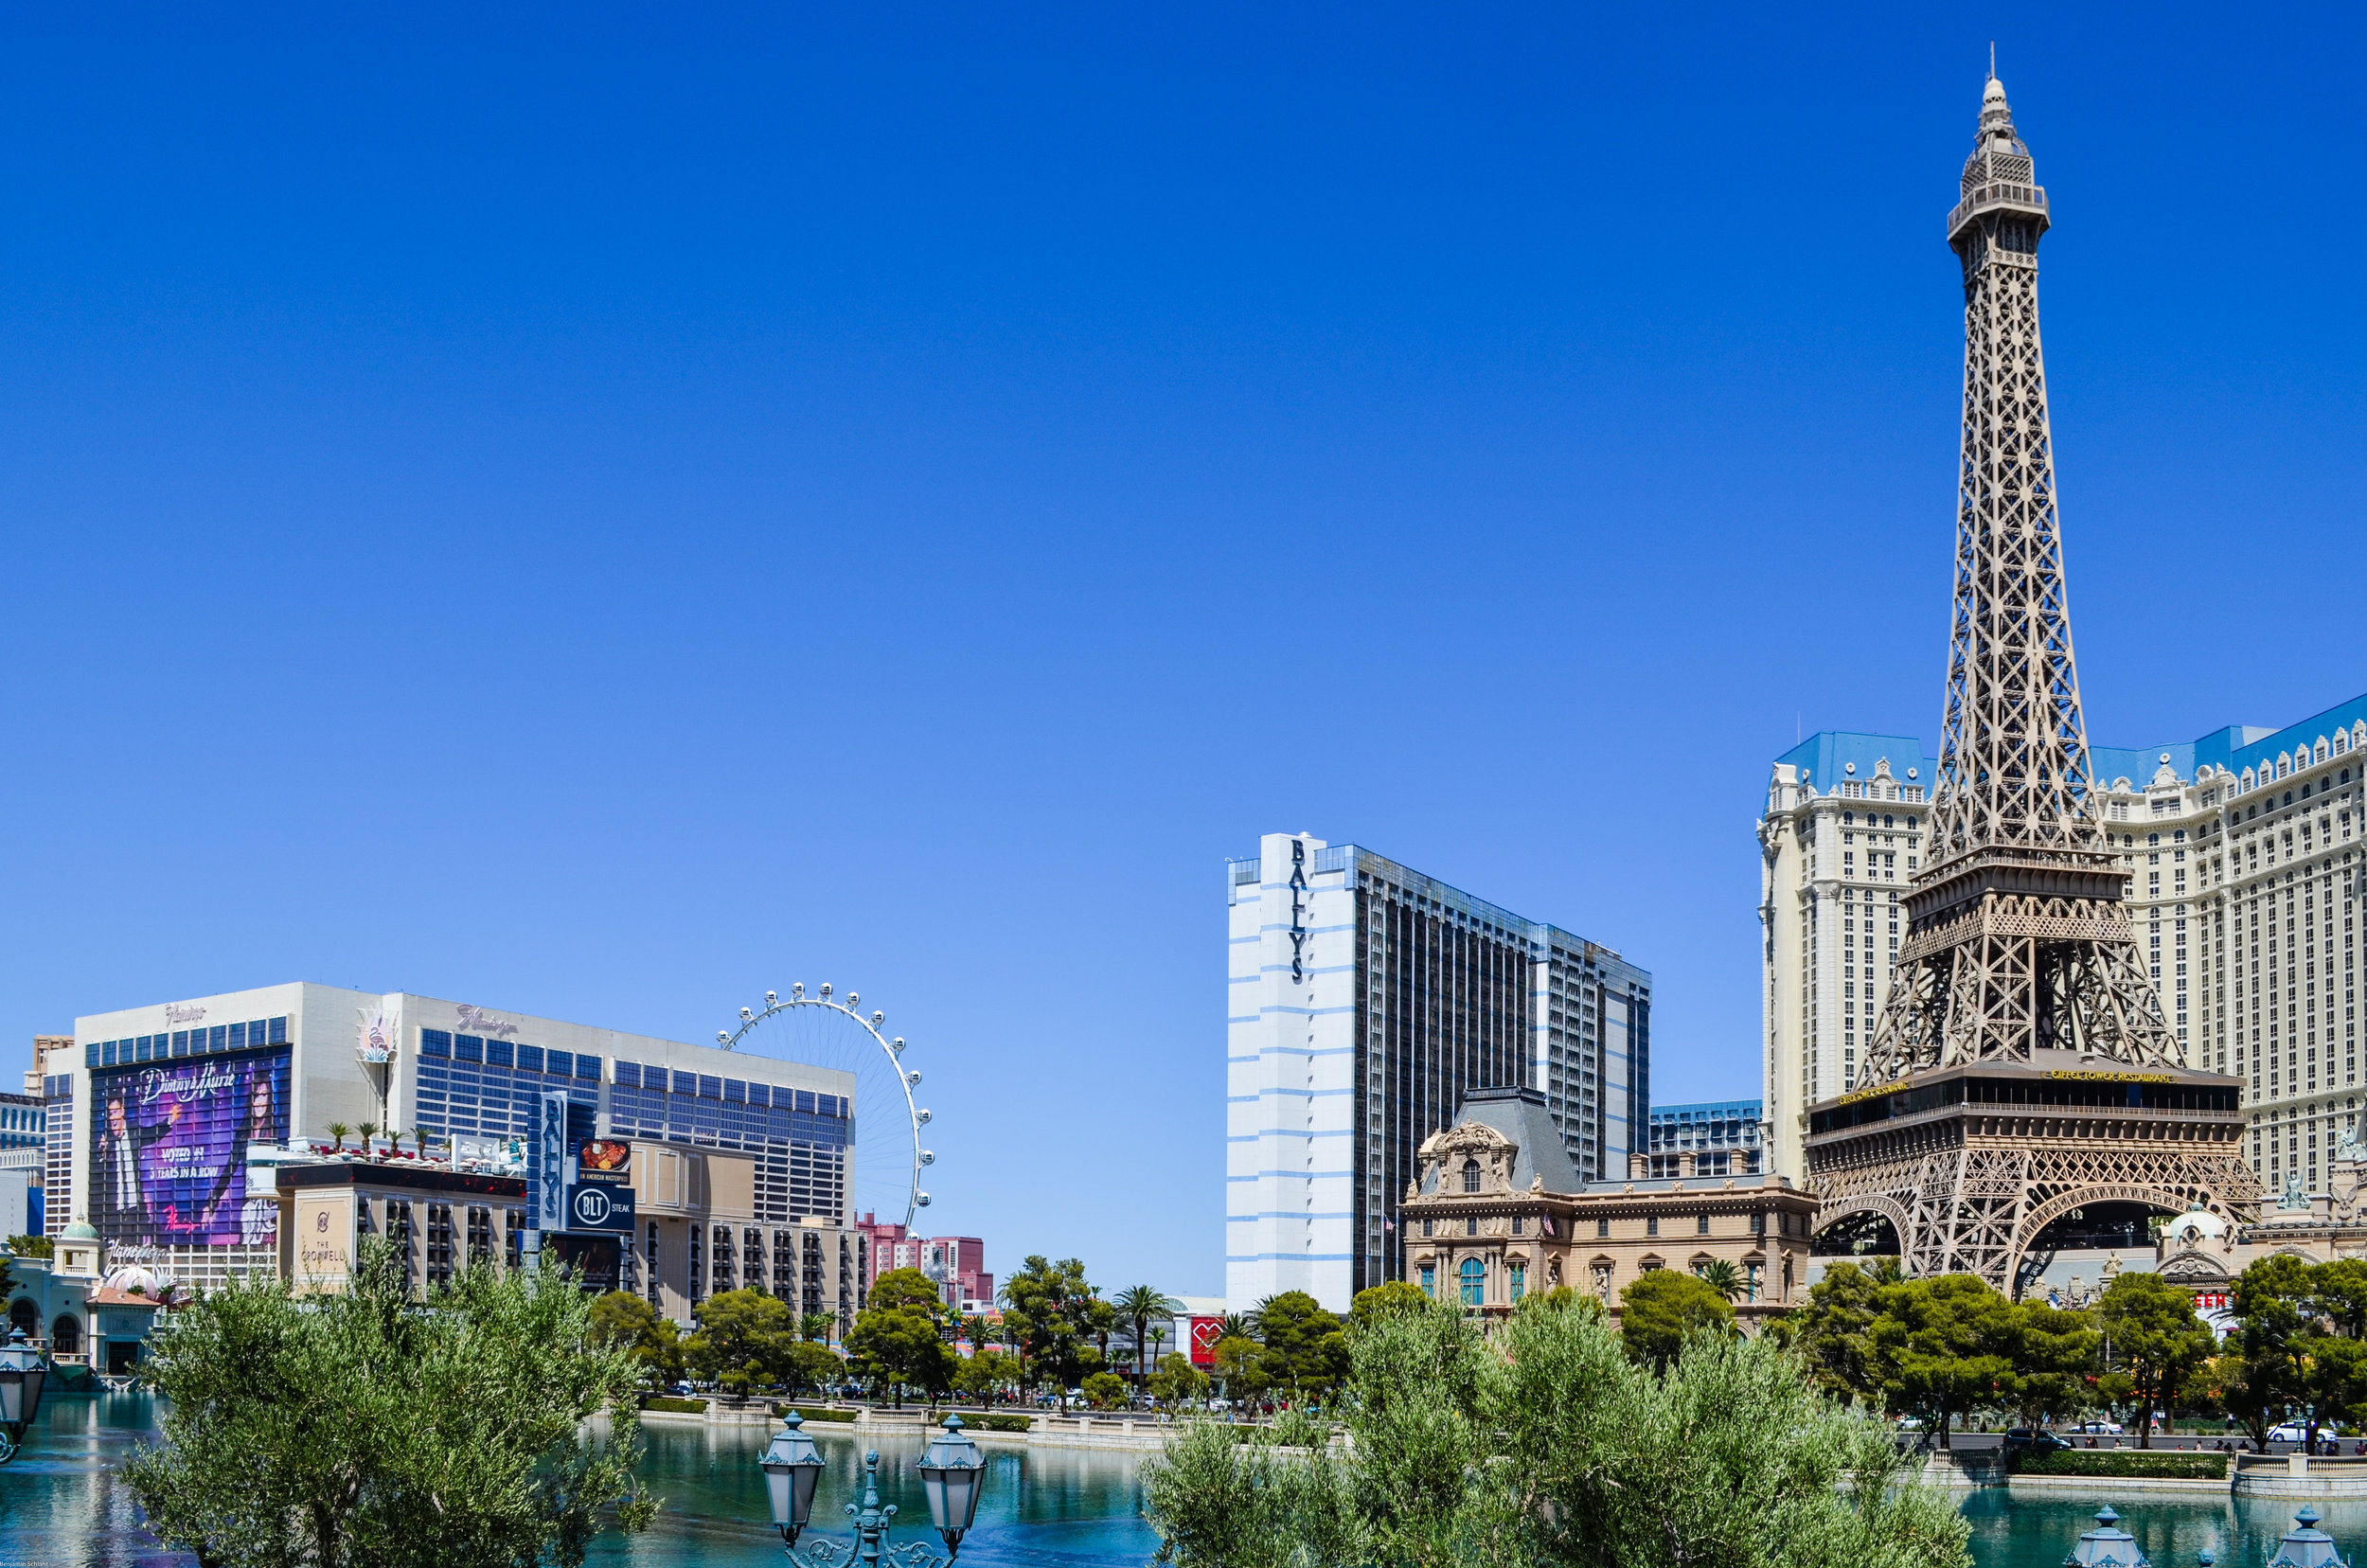 The Eiffel Tower at Paris Las Vegas (and High Roller at the LINQ in the background)